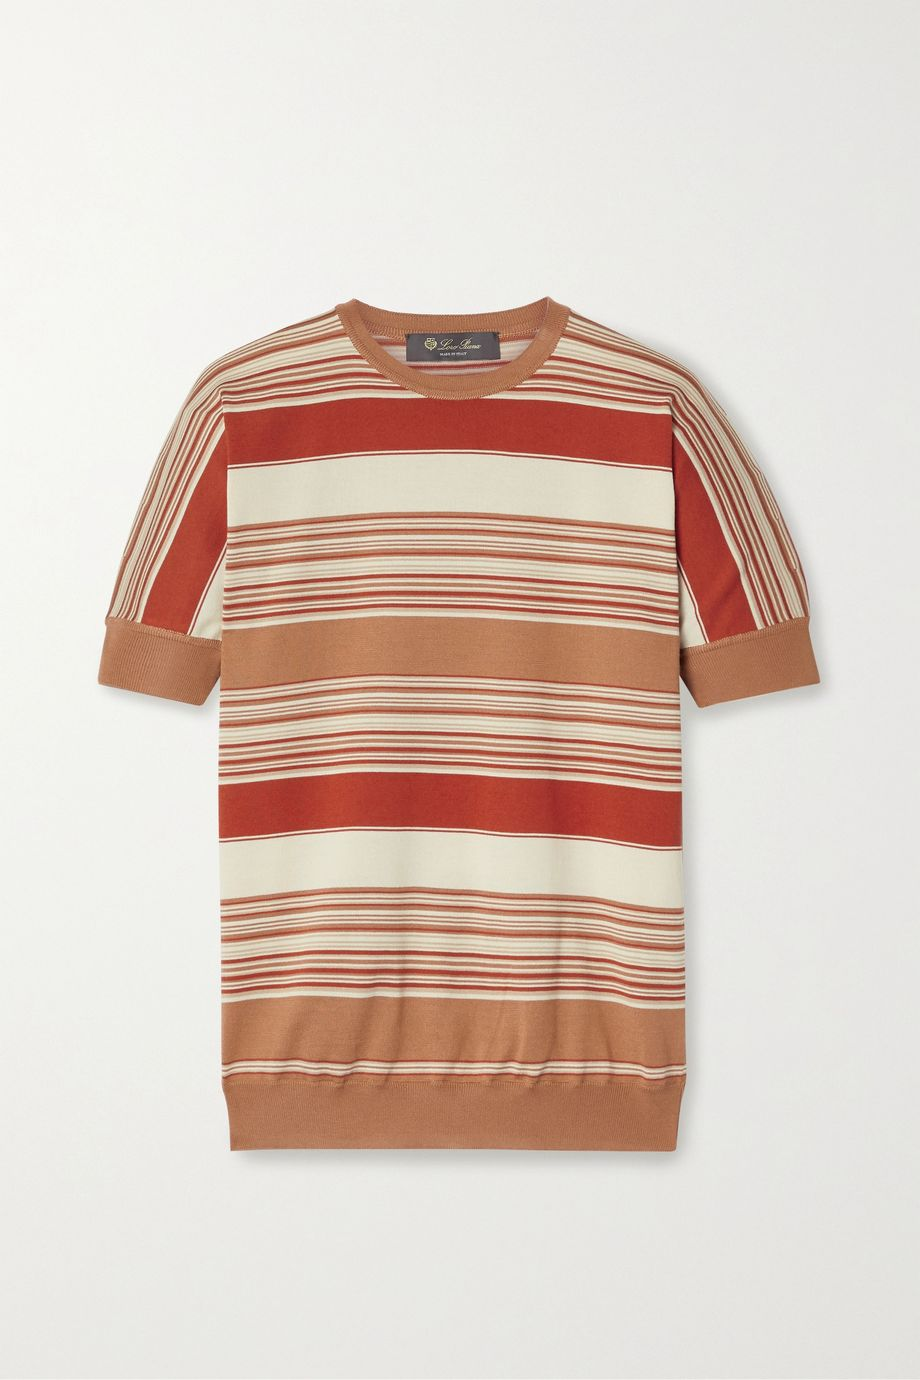 Loro Piana Giroccolo Tangery striped silk and cotton-blend sweater